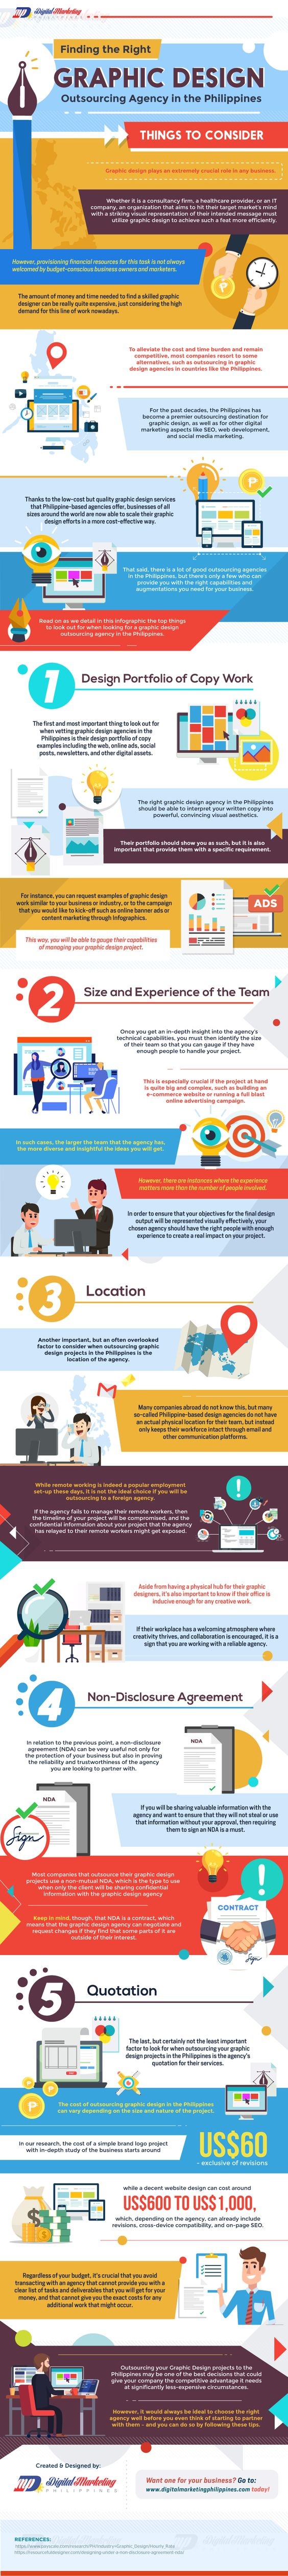 Graphic Design Plays An Extremely Crucial Role In Any Business Whether It Is A Consultancy Firm A Healthcar In 2020 Graphic Design Web Development Design Infographic